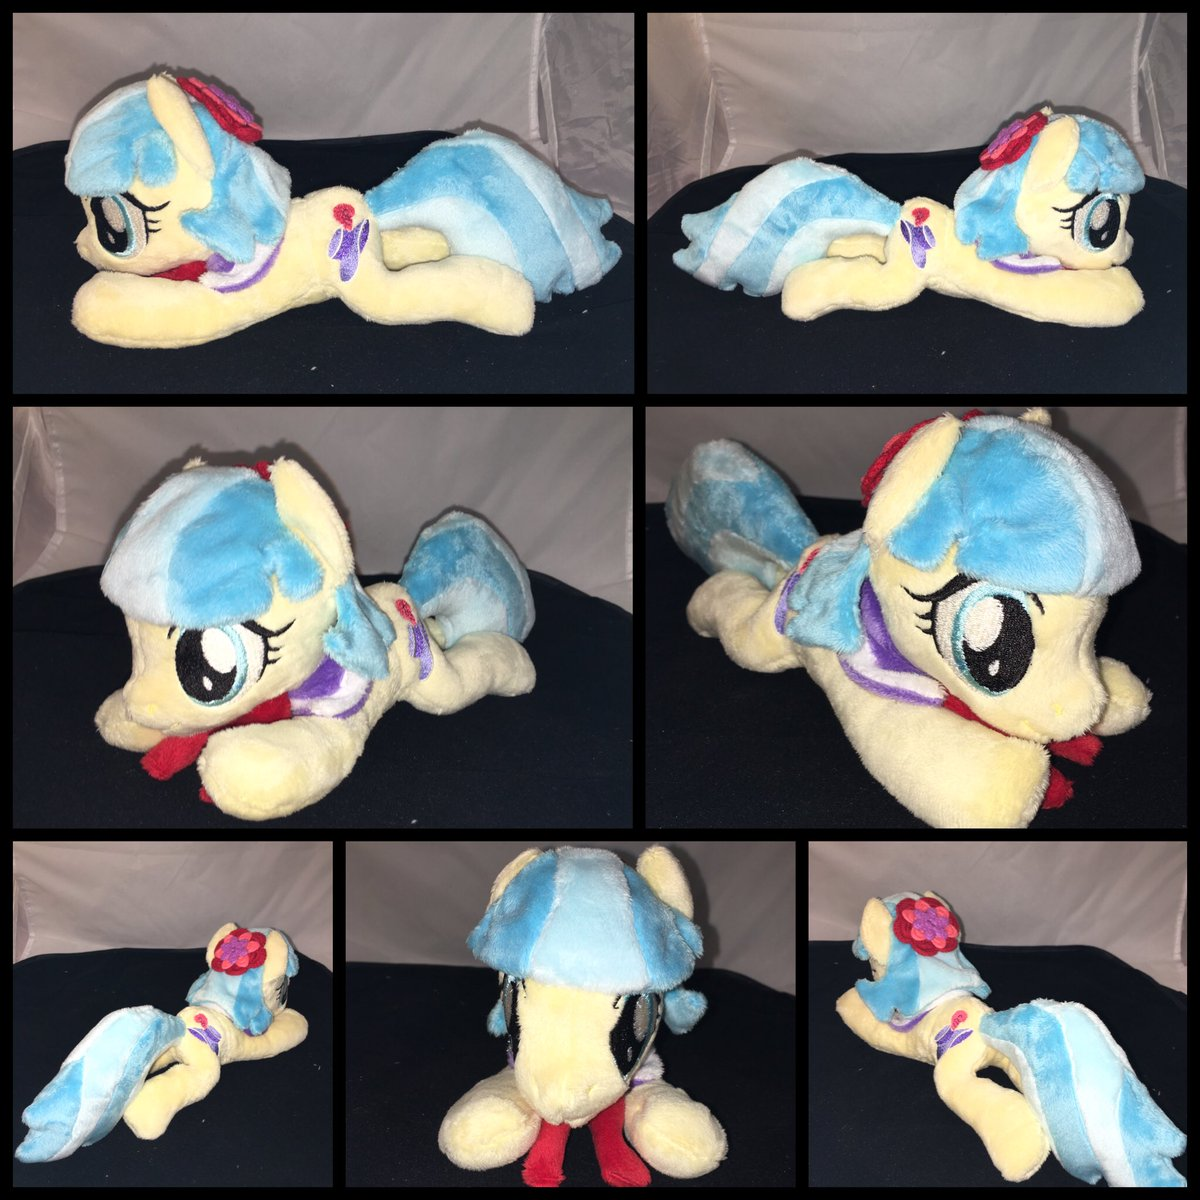 FOR SALE! Selling these two cuties! Asking $125 plus shipping each! #plushies #mlpfim #brony #poniesbyrubiowolf #forsale #mlp <br>http://pic.twitter.com/mqfy6jimcy